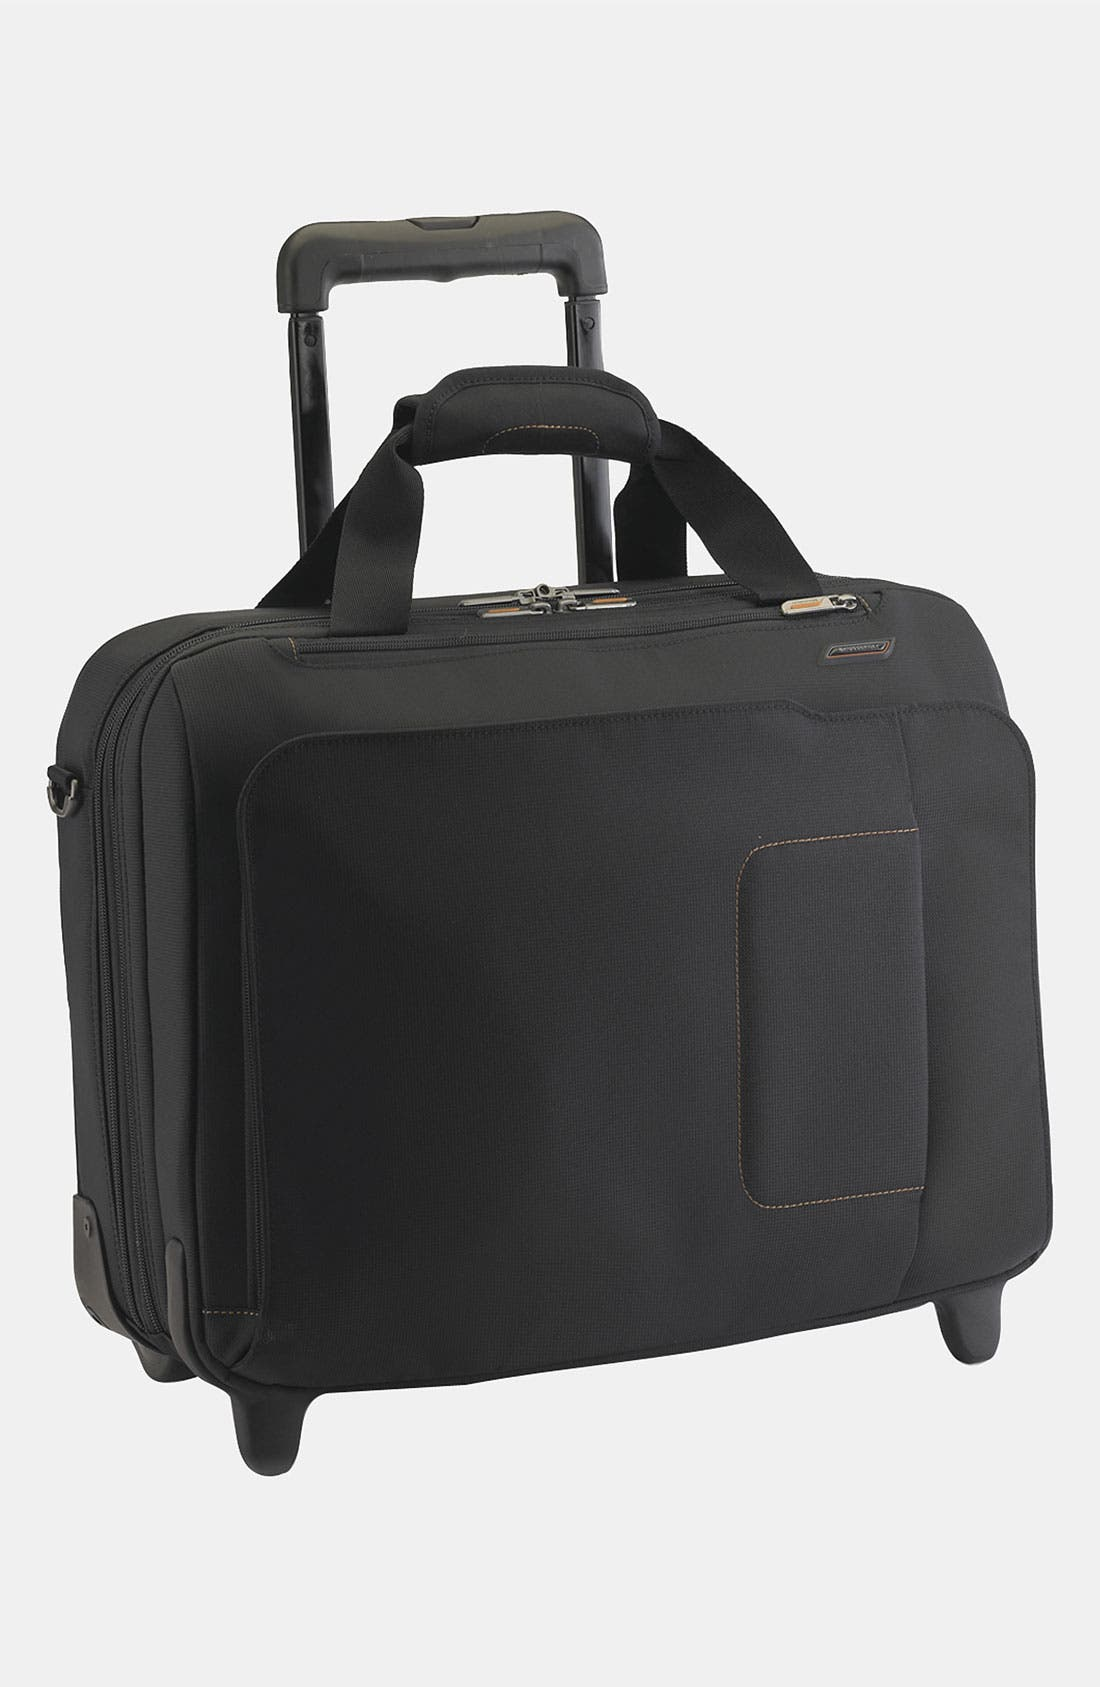 Alternate Image 1 Selected - Briggs & Riley 'Verb - Roam' Large Rolling Case